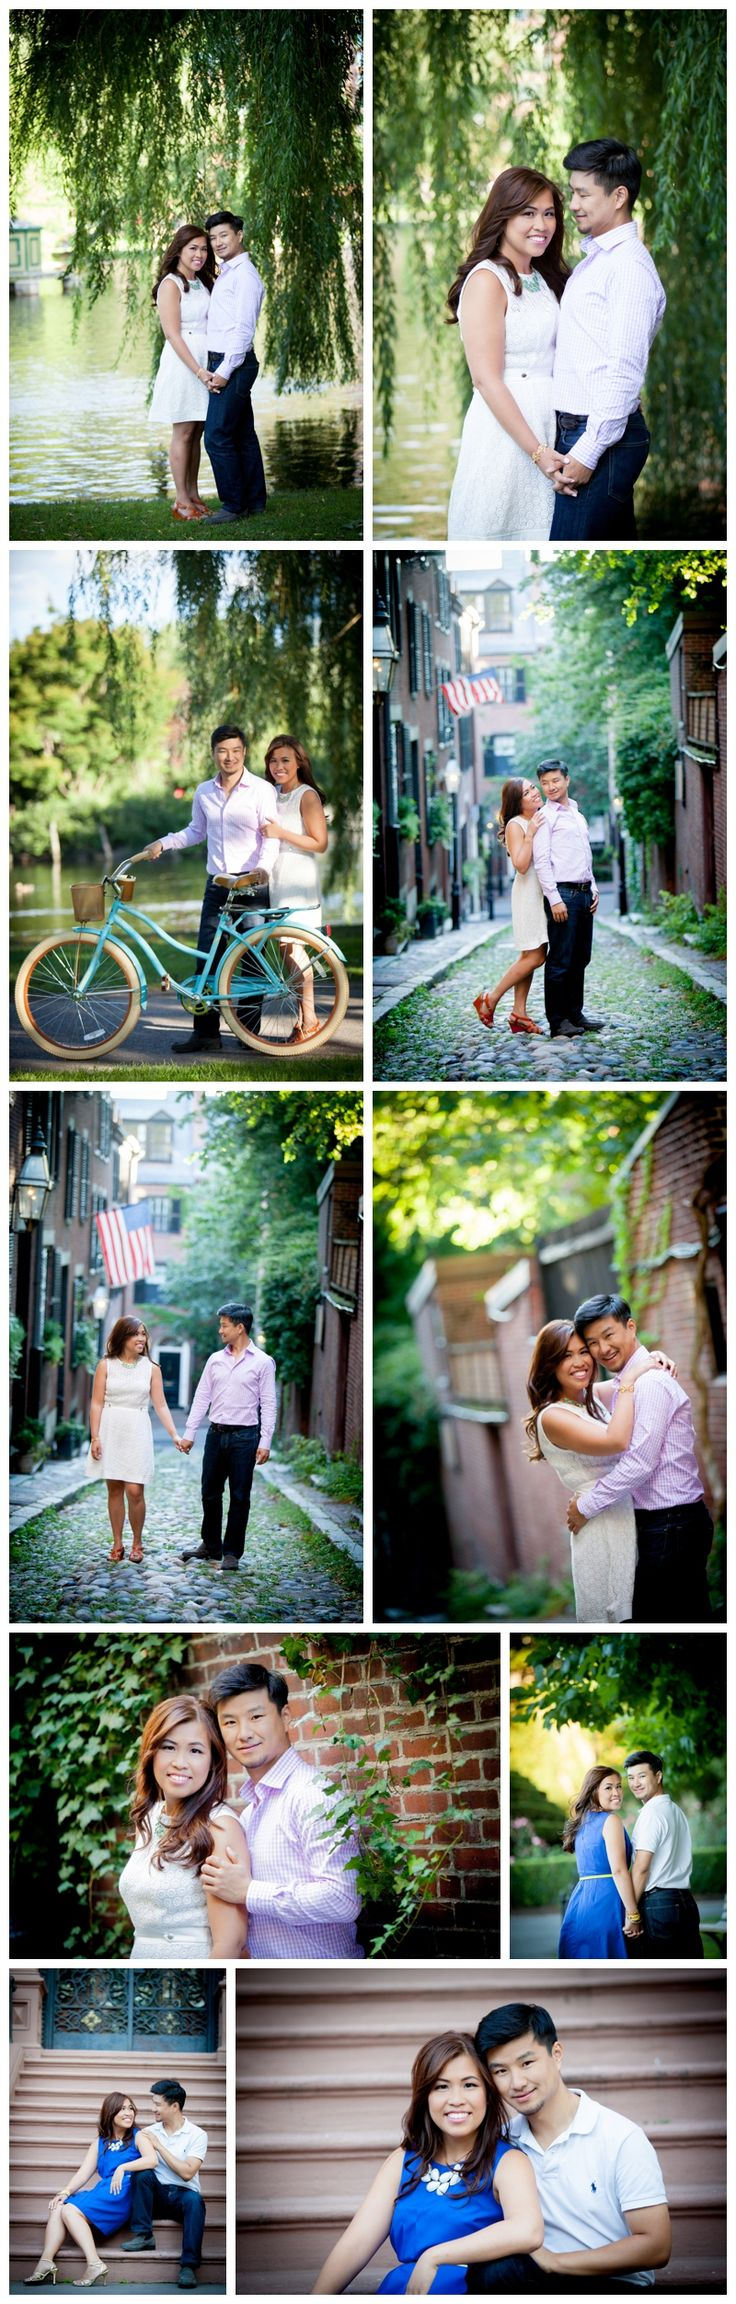 Back Bay Boston Engagement Shoot featuring vintage huffy bike, urban backdrops and the Boston Public Garden. BKB & CO. | Boston Wedding Photography and Video Studio